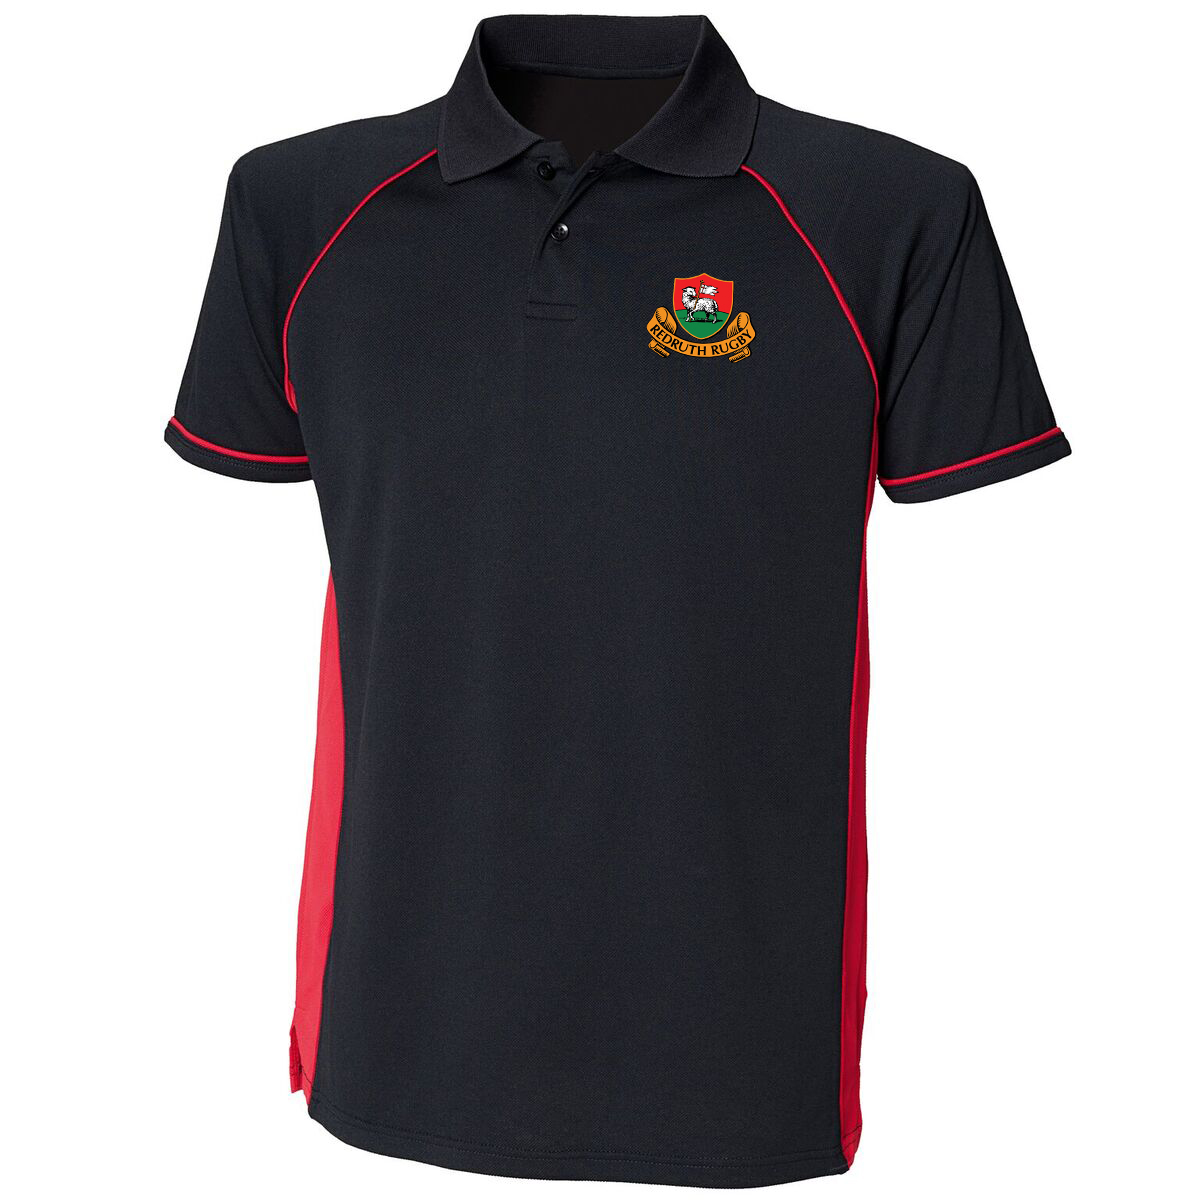 Redruth RFC 'Match Day' Polo